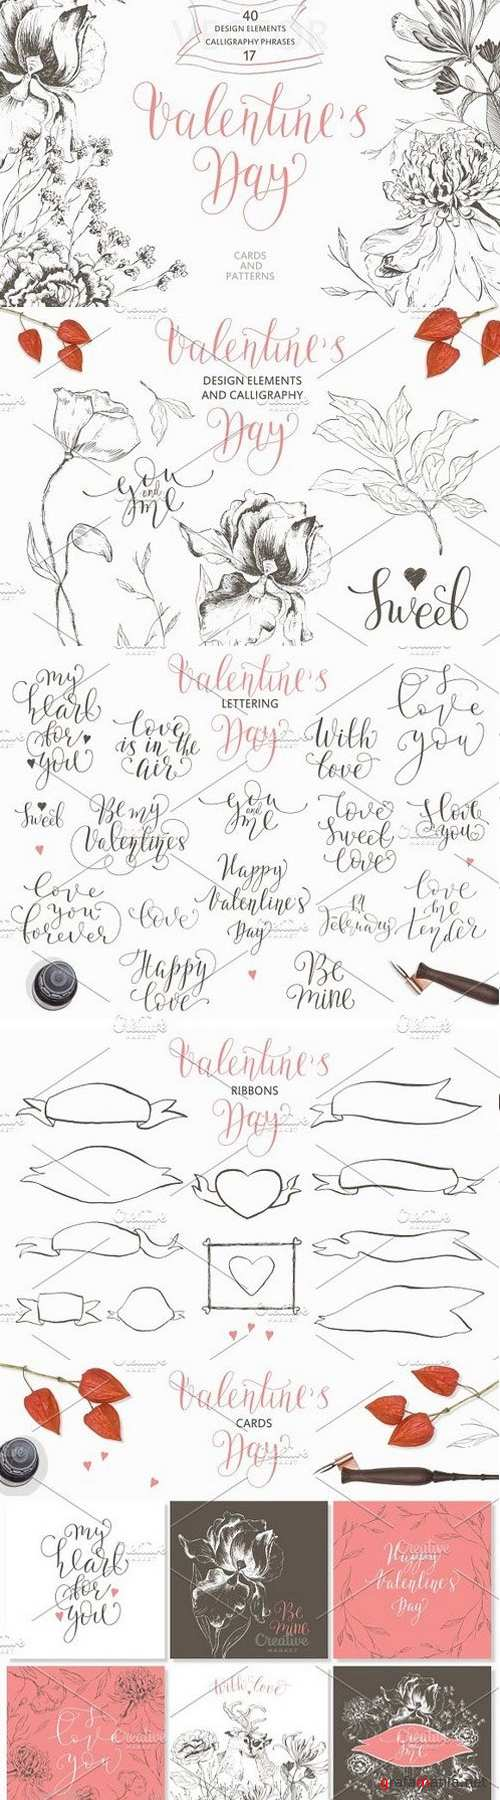 Valentine,s Day.Calligraphy & Drawings 1199643